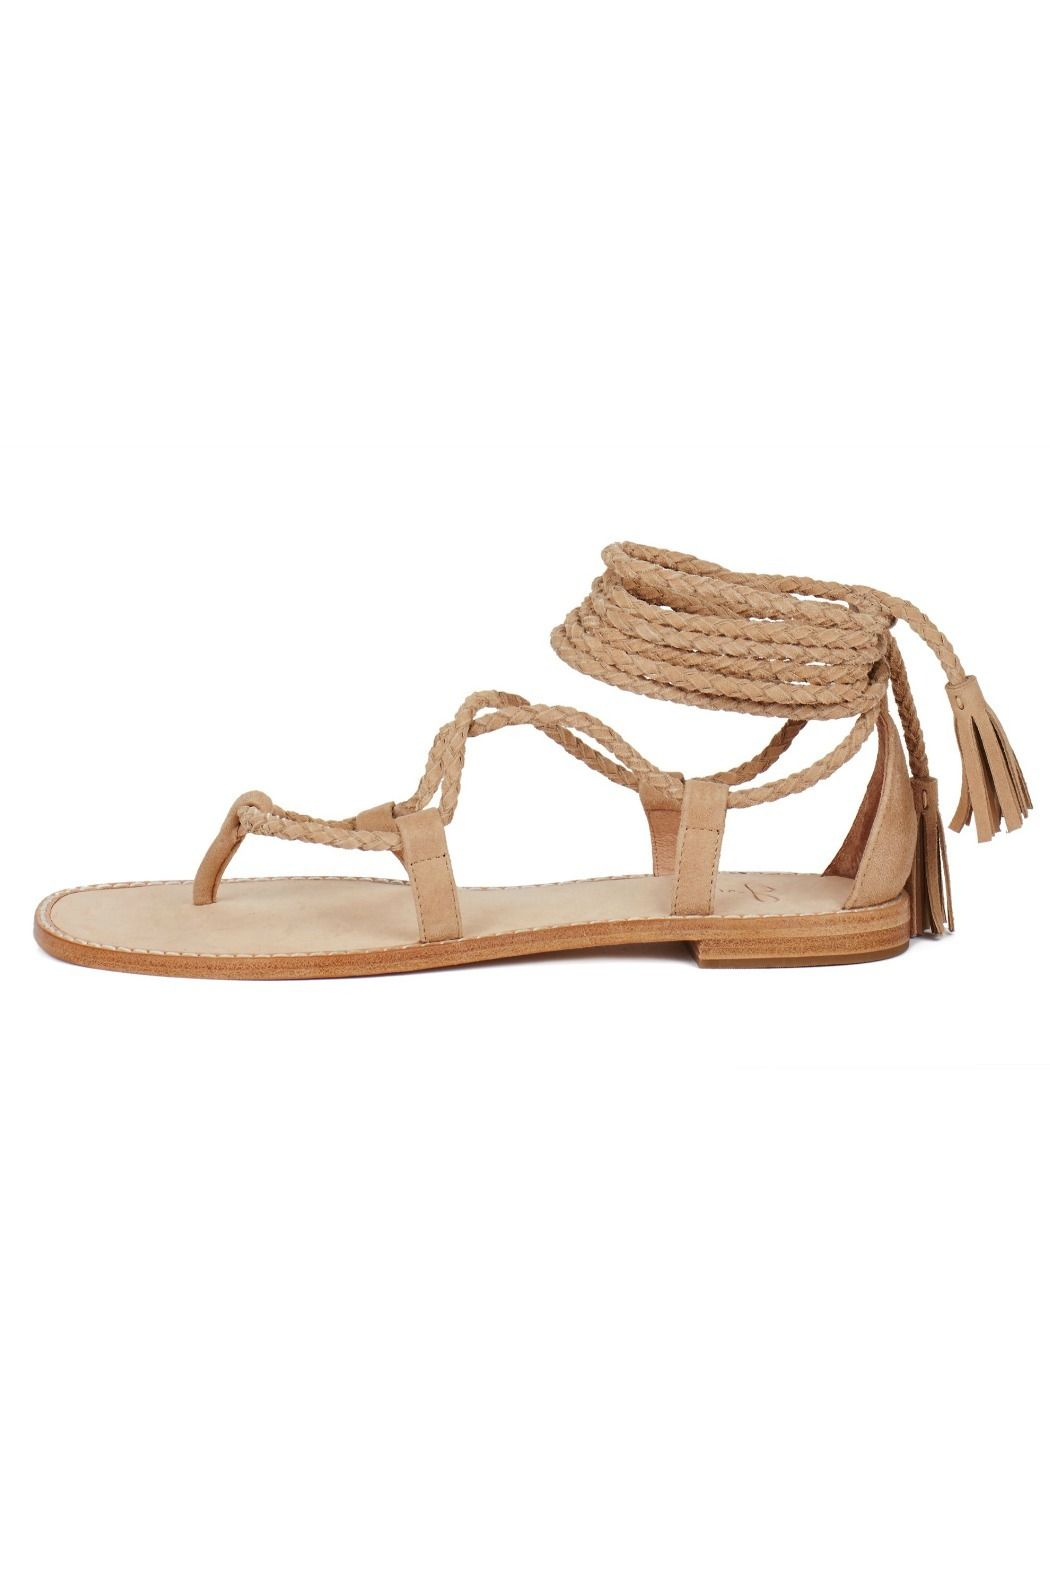 """Guaranteed to be in constant wardrobe rotation this season our 70s inspired Bailee sandals feature braided wraparound straps with tassel details that tie around the ankle. When selecting your size we advise to size down a half size.  Heel: .4""""  Bailee Sandals by Joie. Shoes - Sandals - Flat Wicker Park Chicago Illinois"""